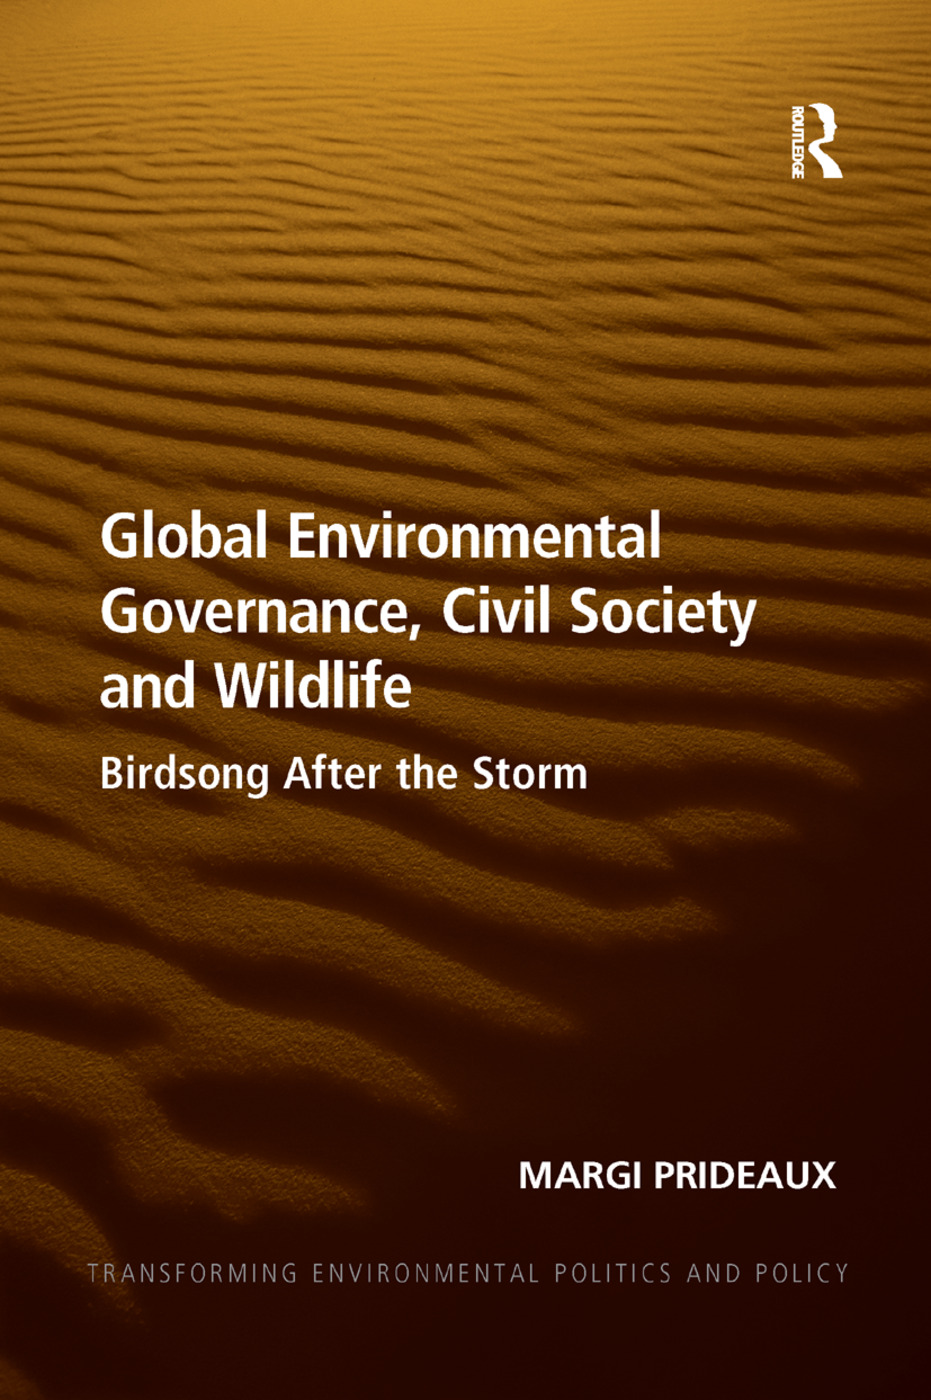 Global Environmental Governance, Civil Society and Wildlife: Birdsong After the Storm book cover